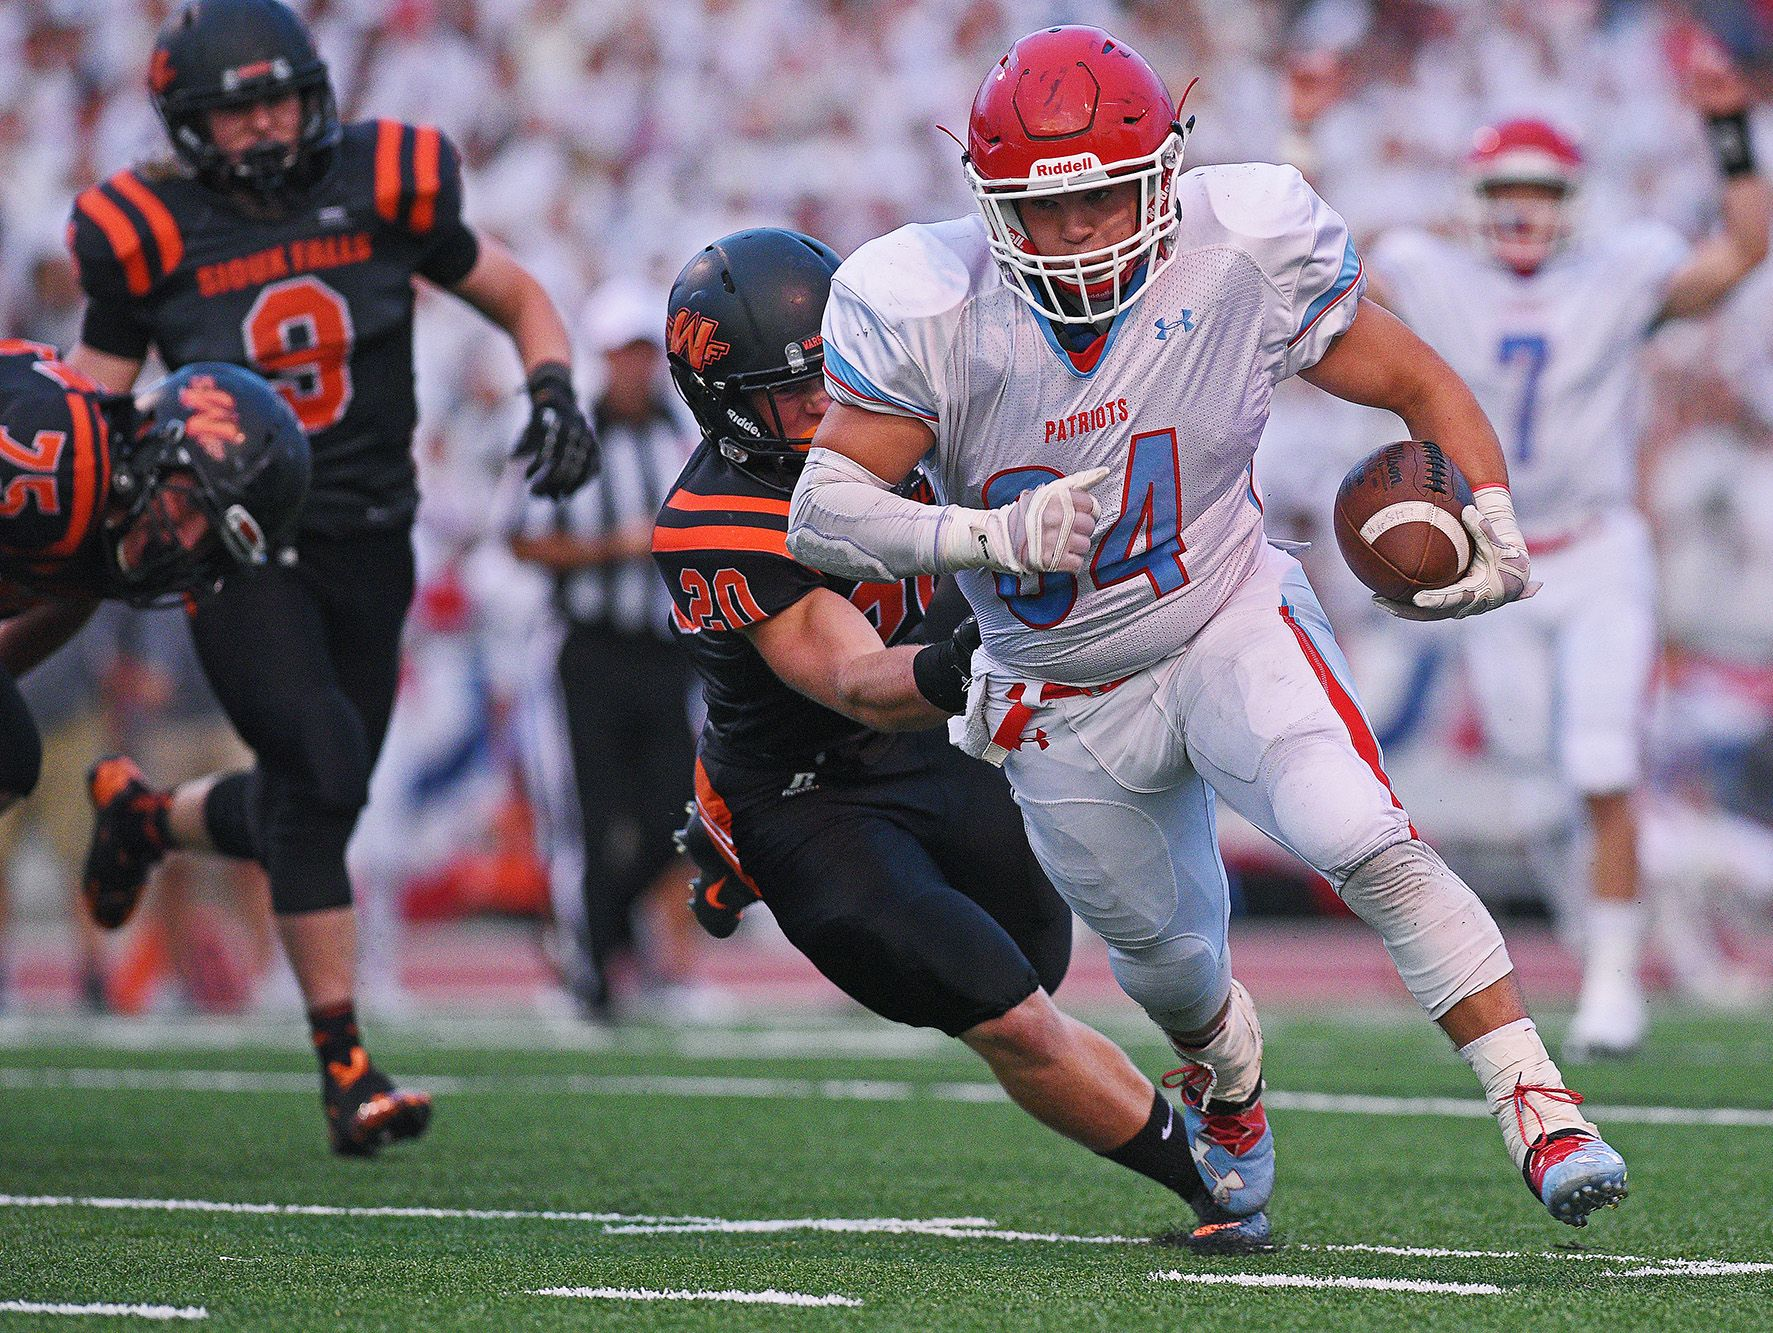 Lincoln's Cory Fichter (34) rushes for a touchdown during a Presidents Bowl game against Washington at Howard Wood Field Saturday, Sept. 3, 2016, in Sioux Falls.